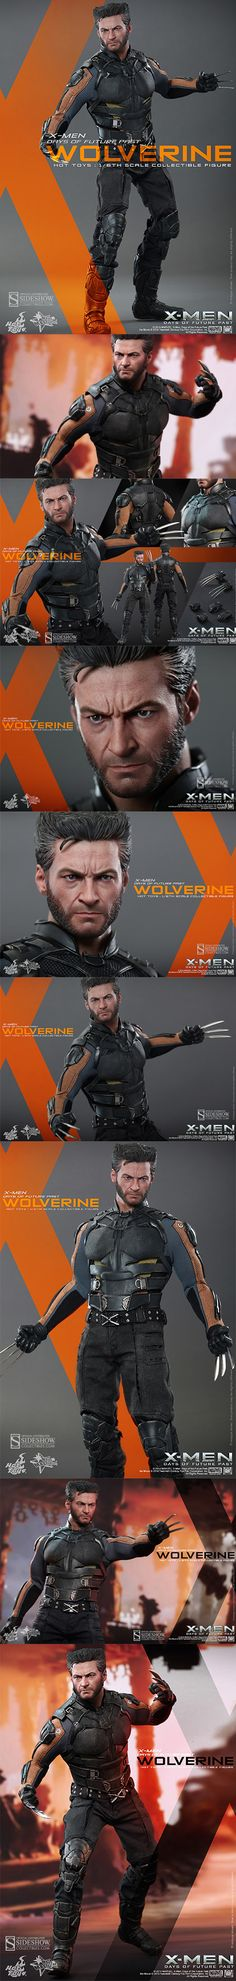 New Hot Toys Wolverine Figure Might Actually Be A Living, Miniature Hugh Jackman Sideshow Collectibles & Hot Toys have revealed the new X-Men: Days of Future Past Wolverine Sixth Scale Collectible Figure. 30 points of articulation & a new head sculpt gets Jackman's facial hair and fierce expression just right. http://nerdapproved.com/approved-products/the-new-hot-toys-wolverine-figure-might-actually-be-a-living-miniature-hugh-jackman/#gBuXCqwE1JclusY6.99